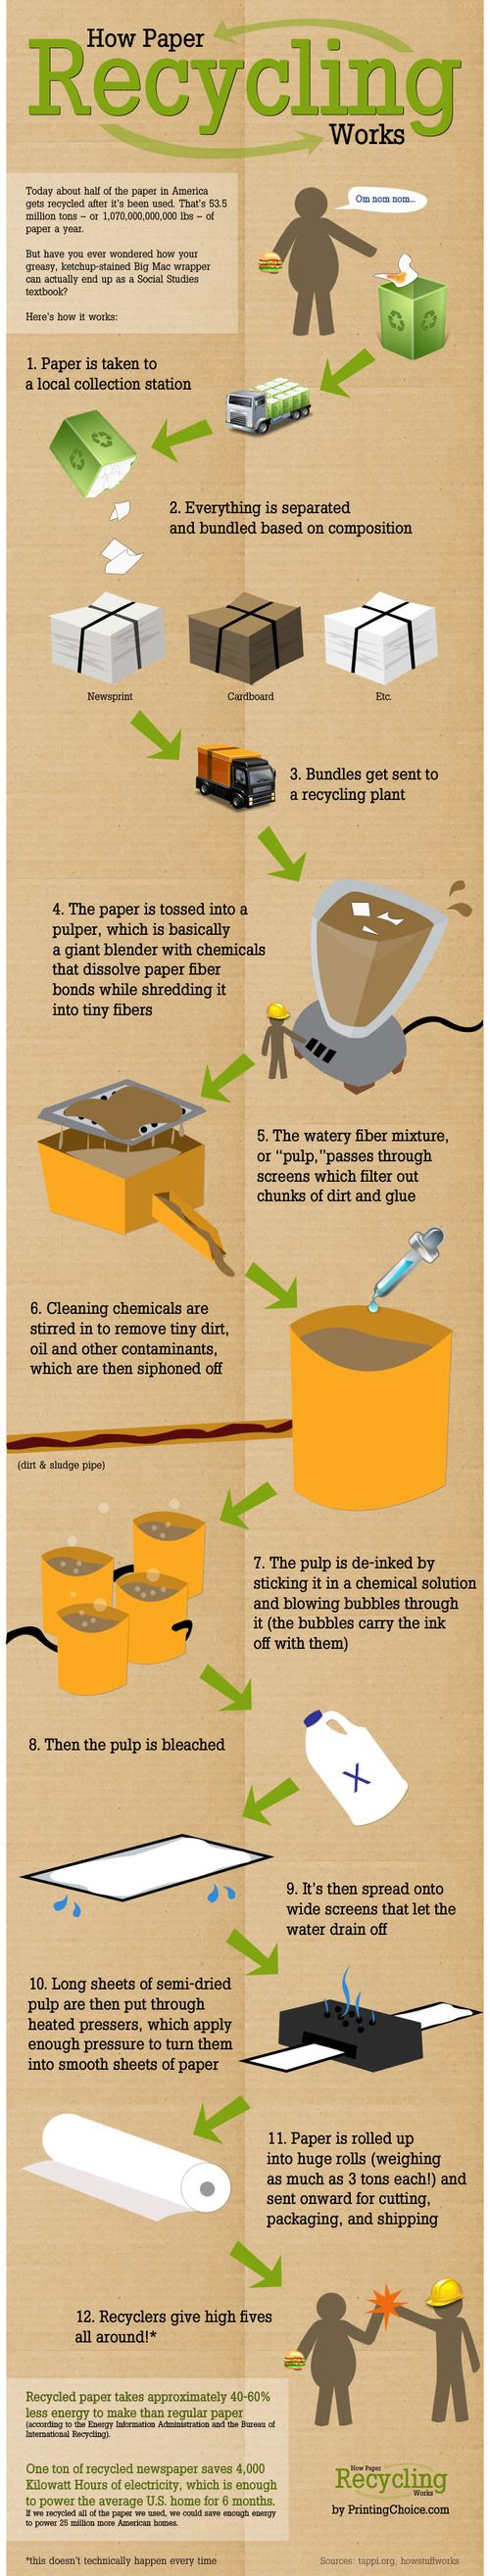 how paper is recycled infographic